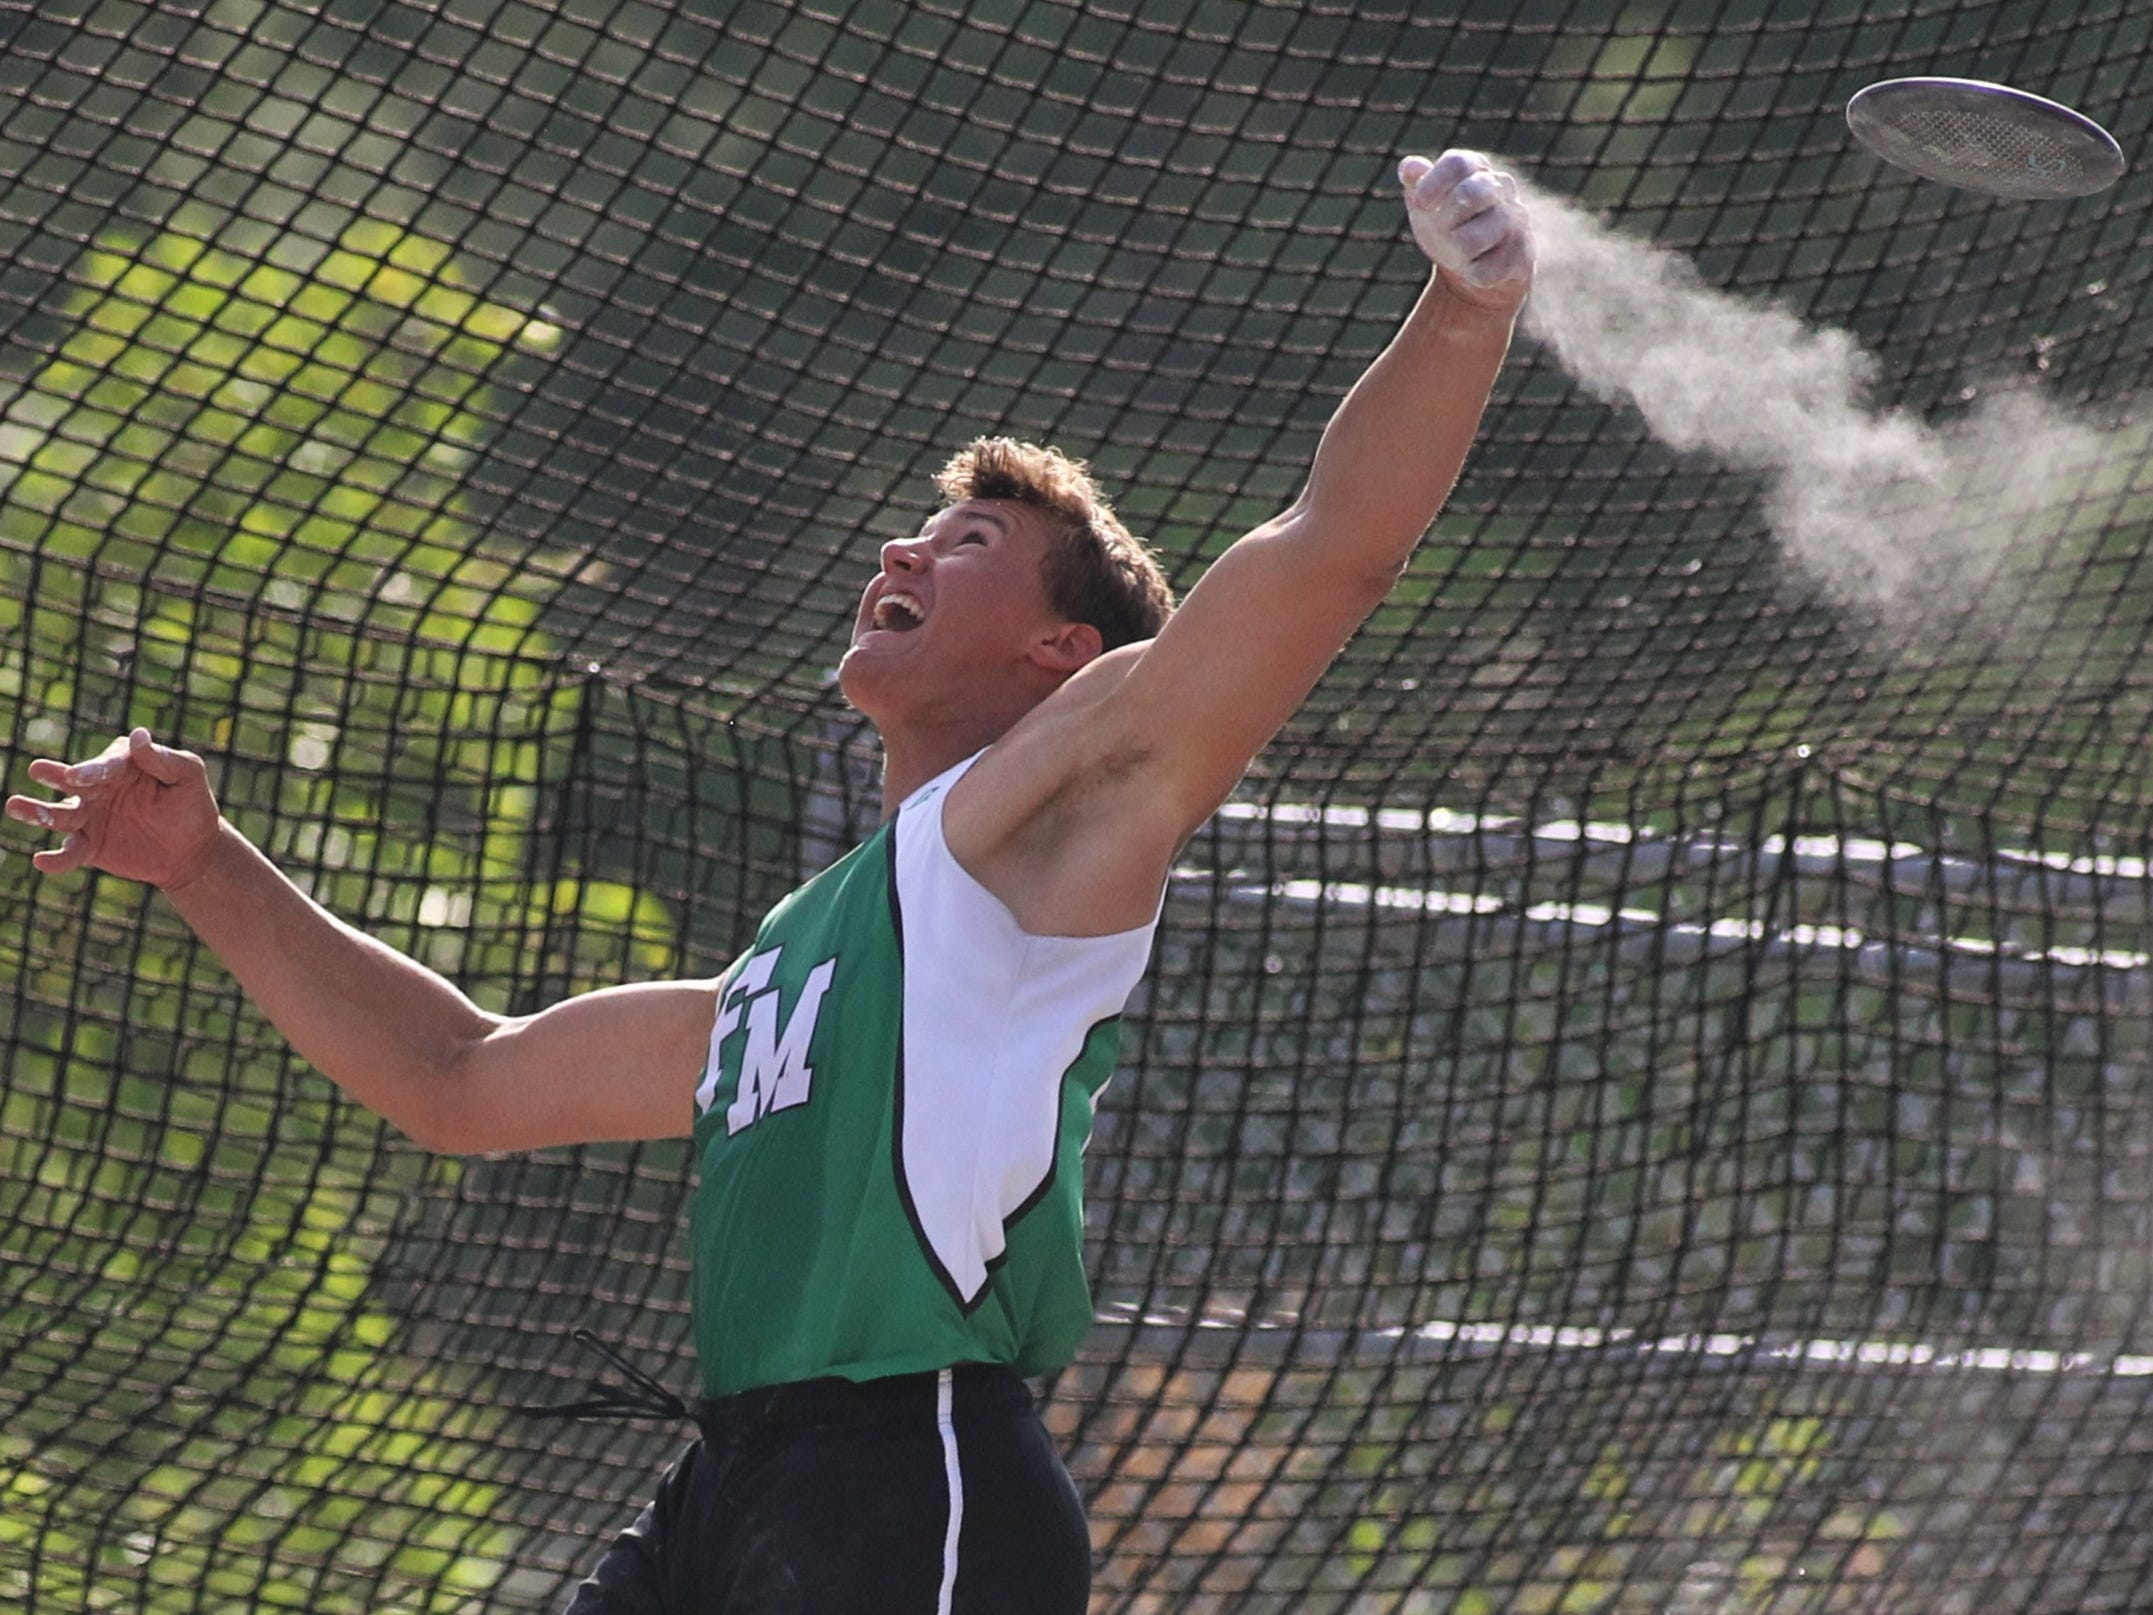 Fort Myers senior Jacob Lemmon won state titles in Class 3A discus and shot put during the FHSAA Track and Field State Championships at UNF's Hodges Stadium in Jacksonville on May 3 and 4, 2019.